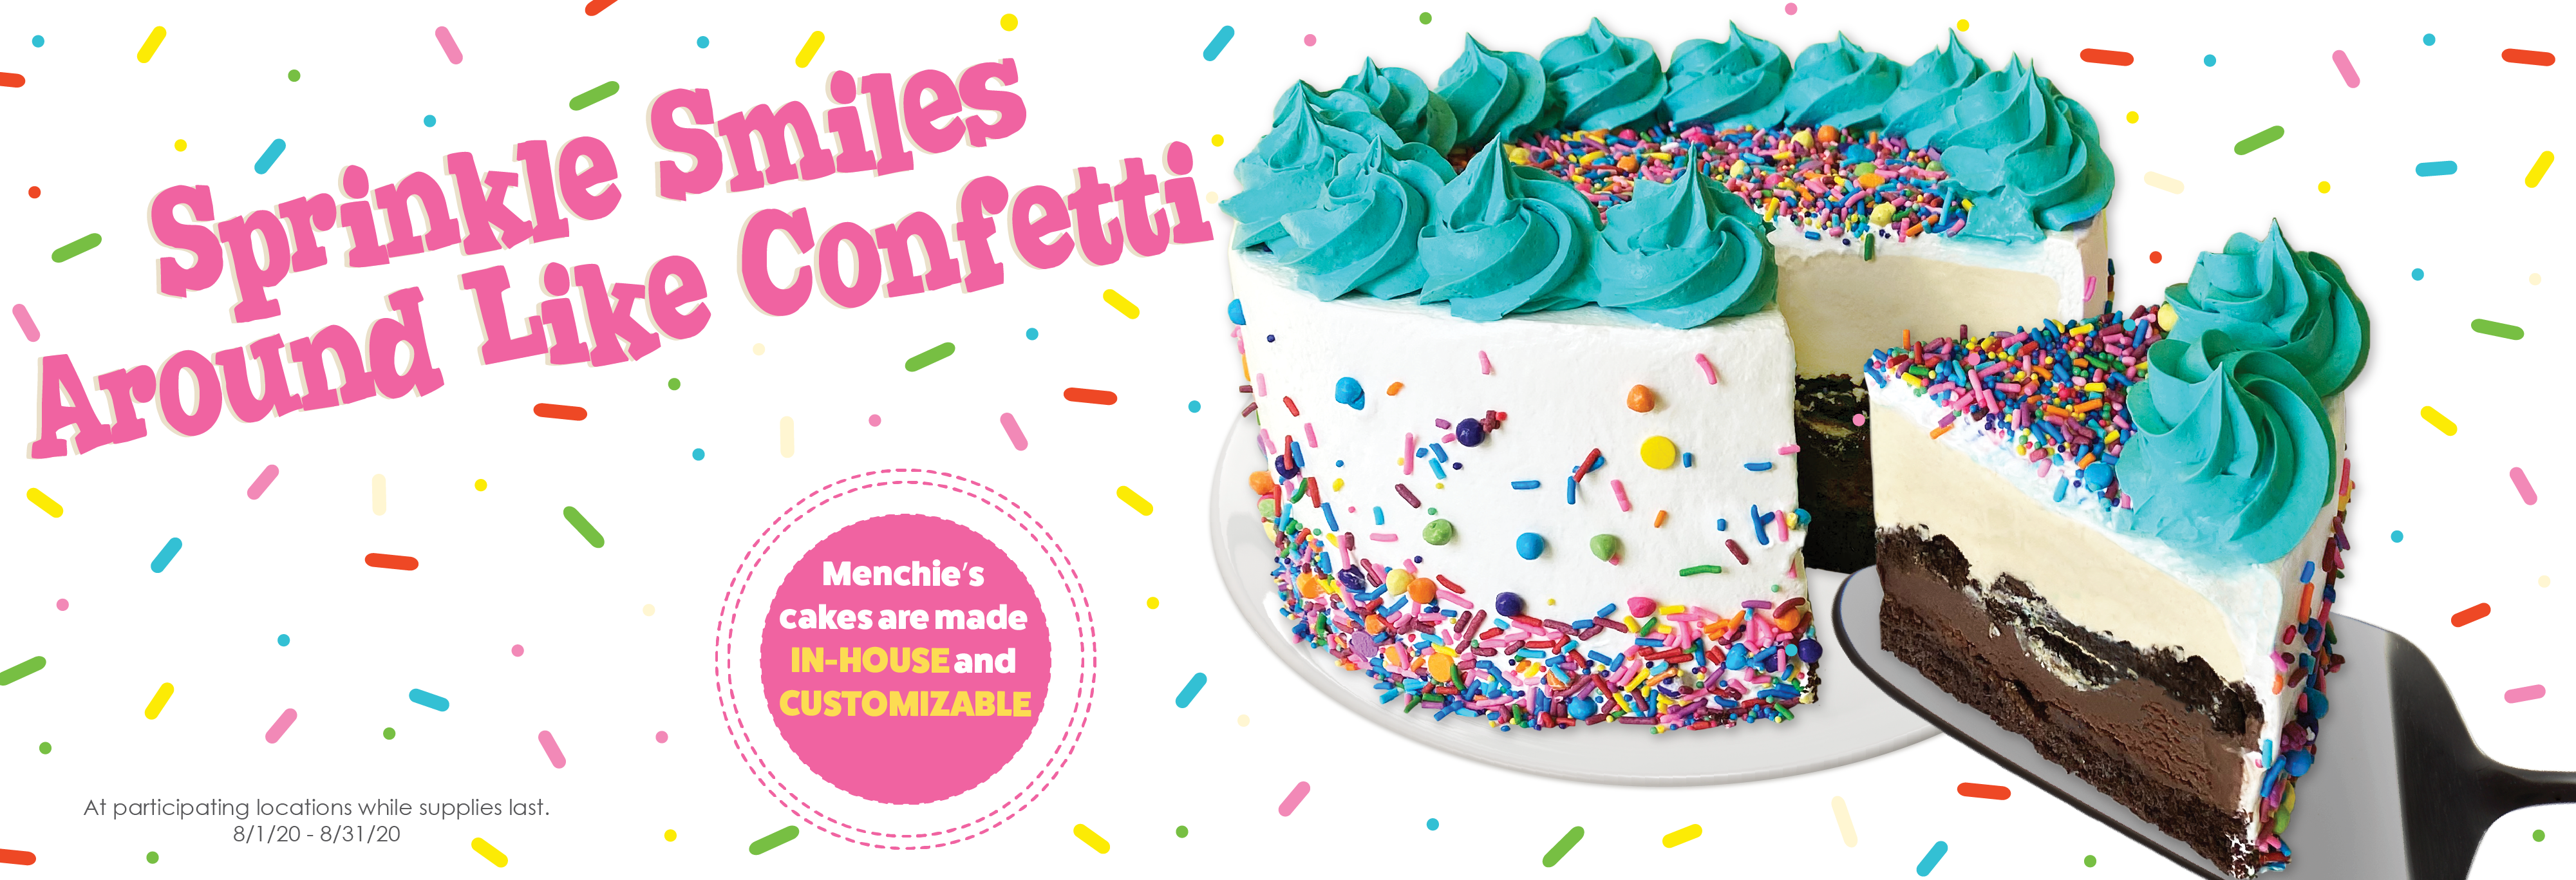 Celebrate your upcoming festivities with our Confetti froyo Cake. With delicious colorful icing topped with sprinkles, this cake is sure to spread smiles.